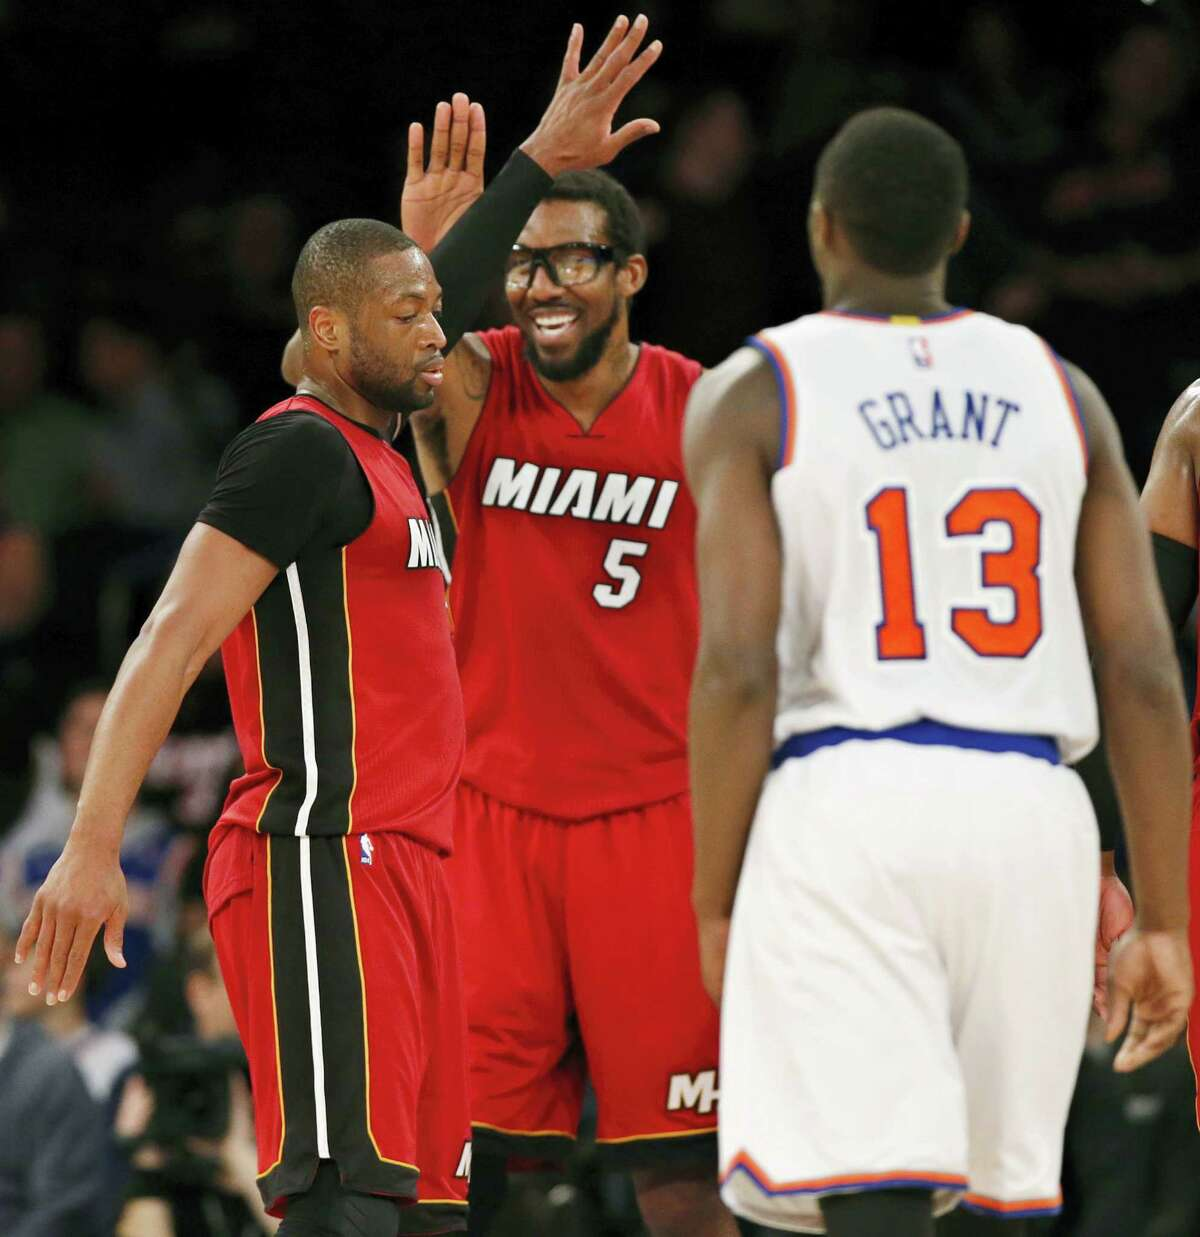 Miami Heat forward Amar'e Stoudemire (5) and guard Dwyane Wade (3) celebrate in the fourth quarter against the New York Knicks as Knicks guard Jerian Grant (13) watches during the Heat's 98-81 victory over the Knicks at Madison Square Garden Sunday.